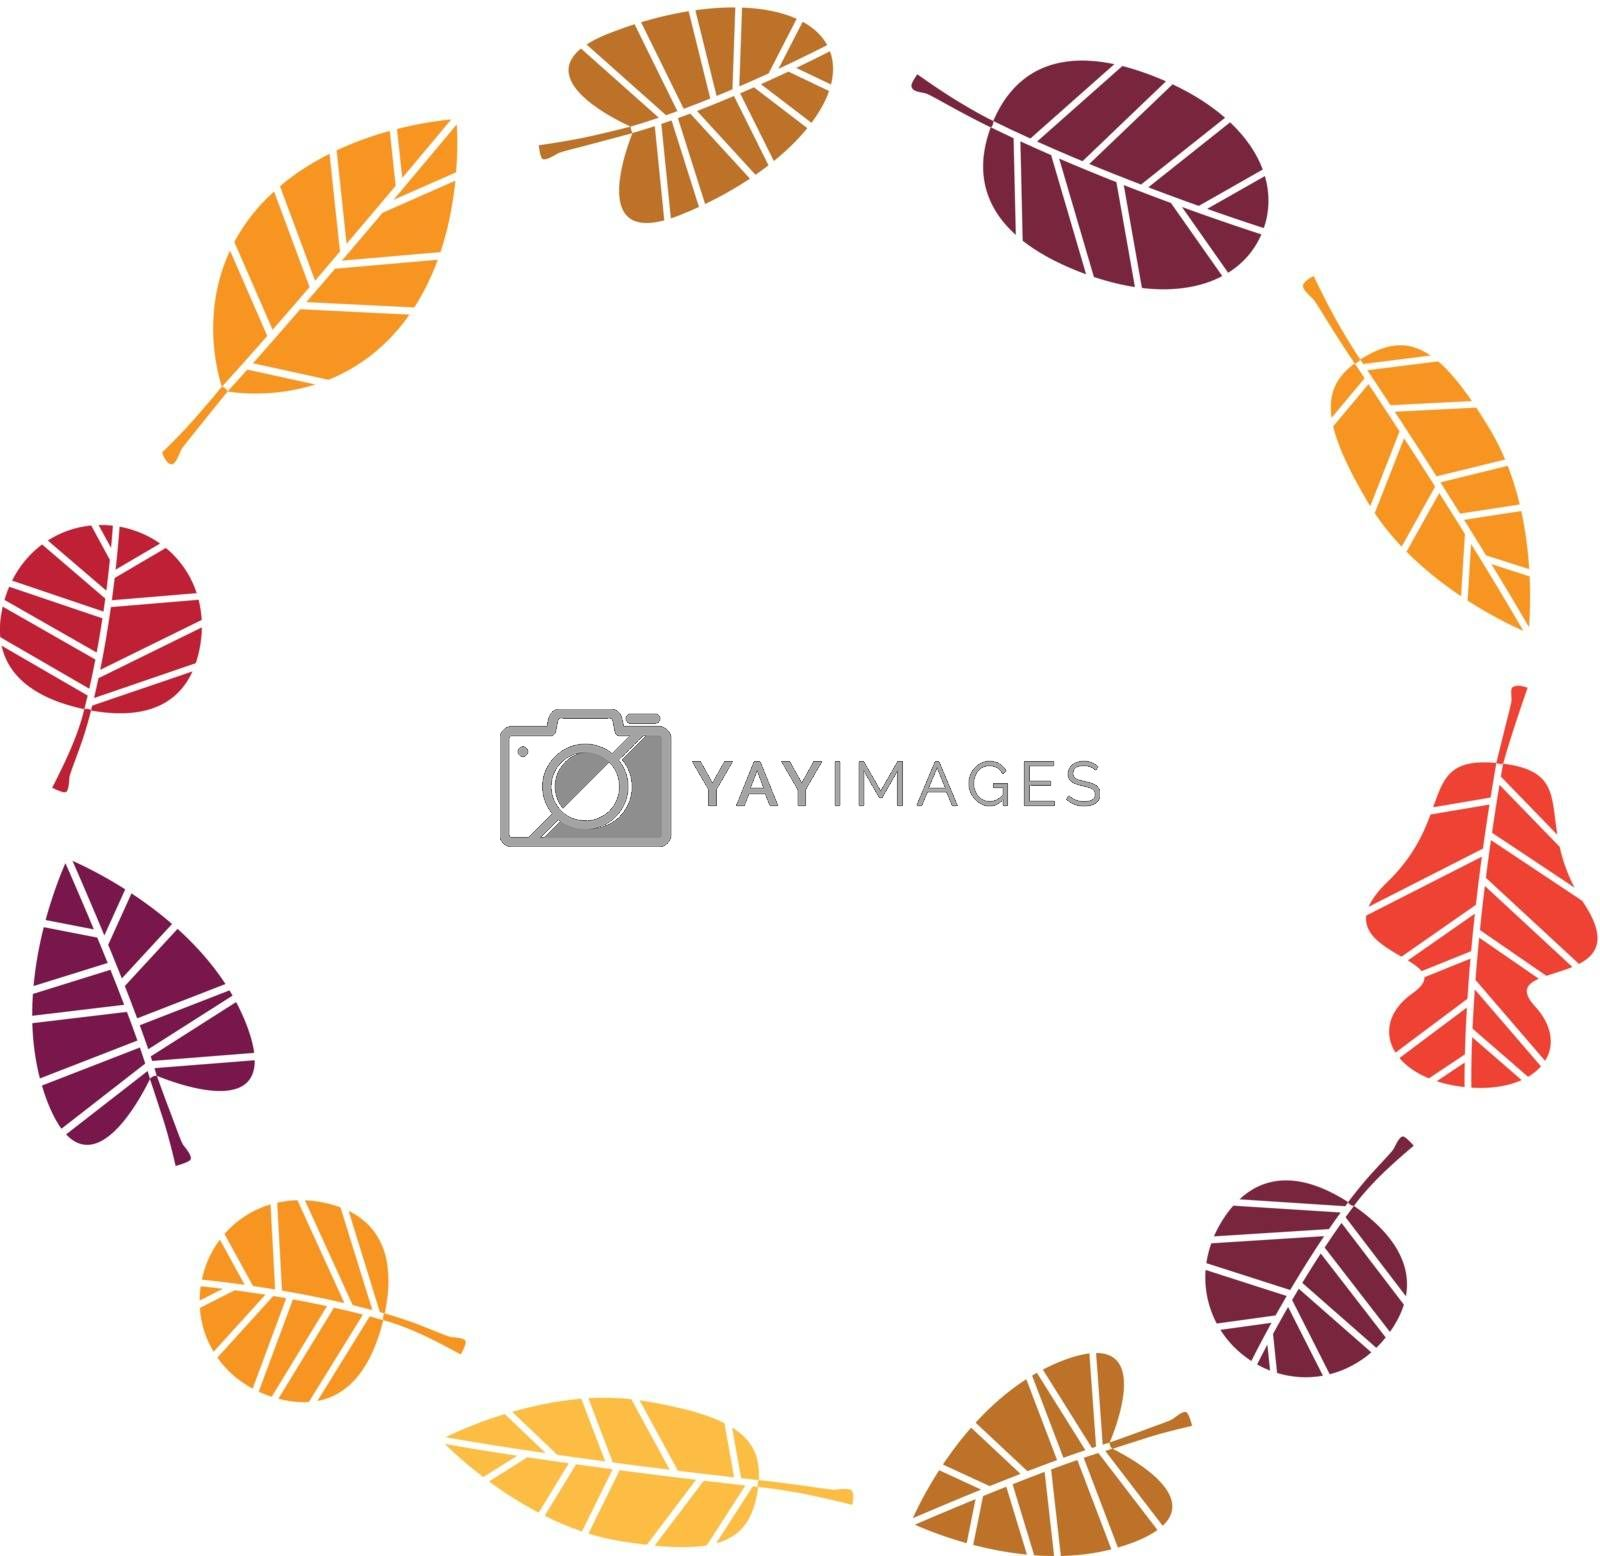 Royalty free image of Wreath with colorful Autumn leaves isolated on white by Lordalea